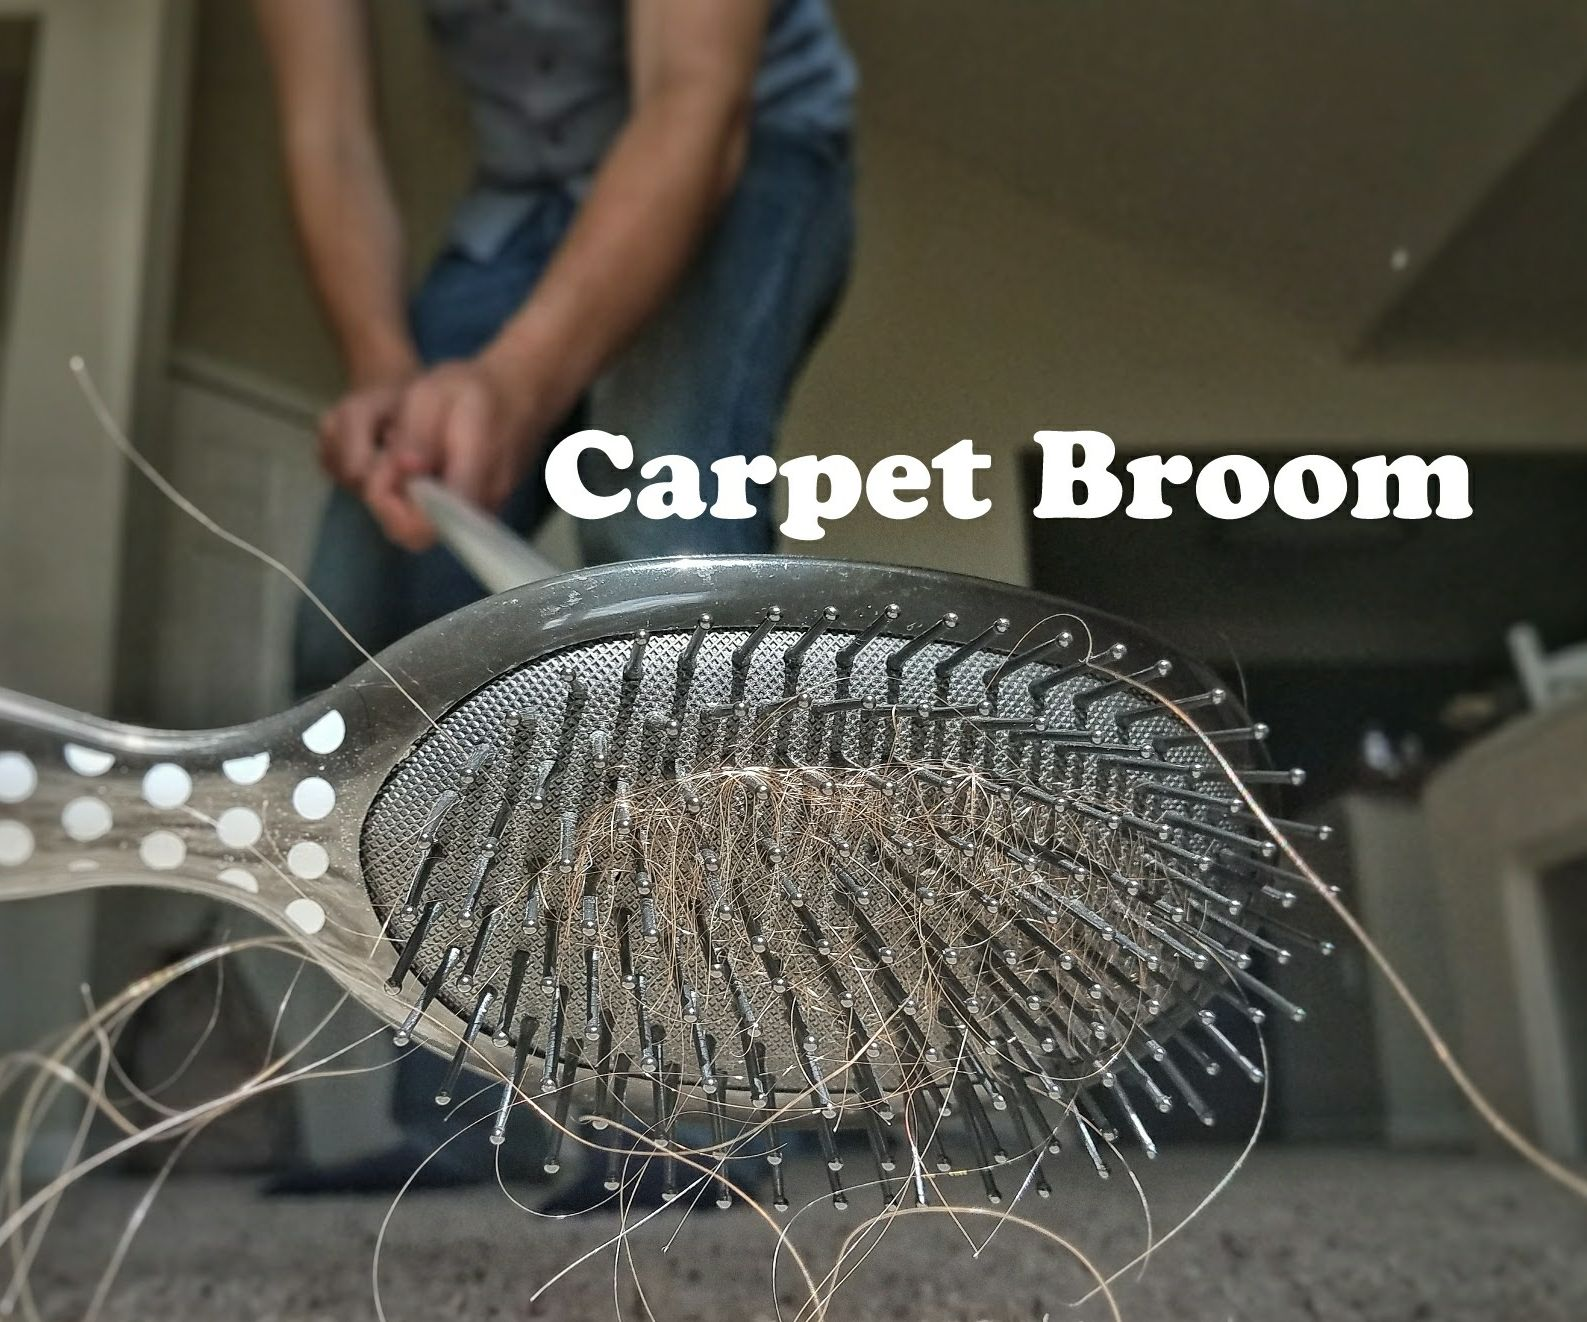 $2 Carpet Broom